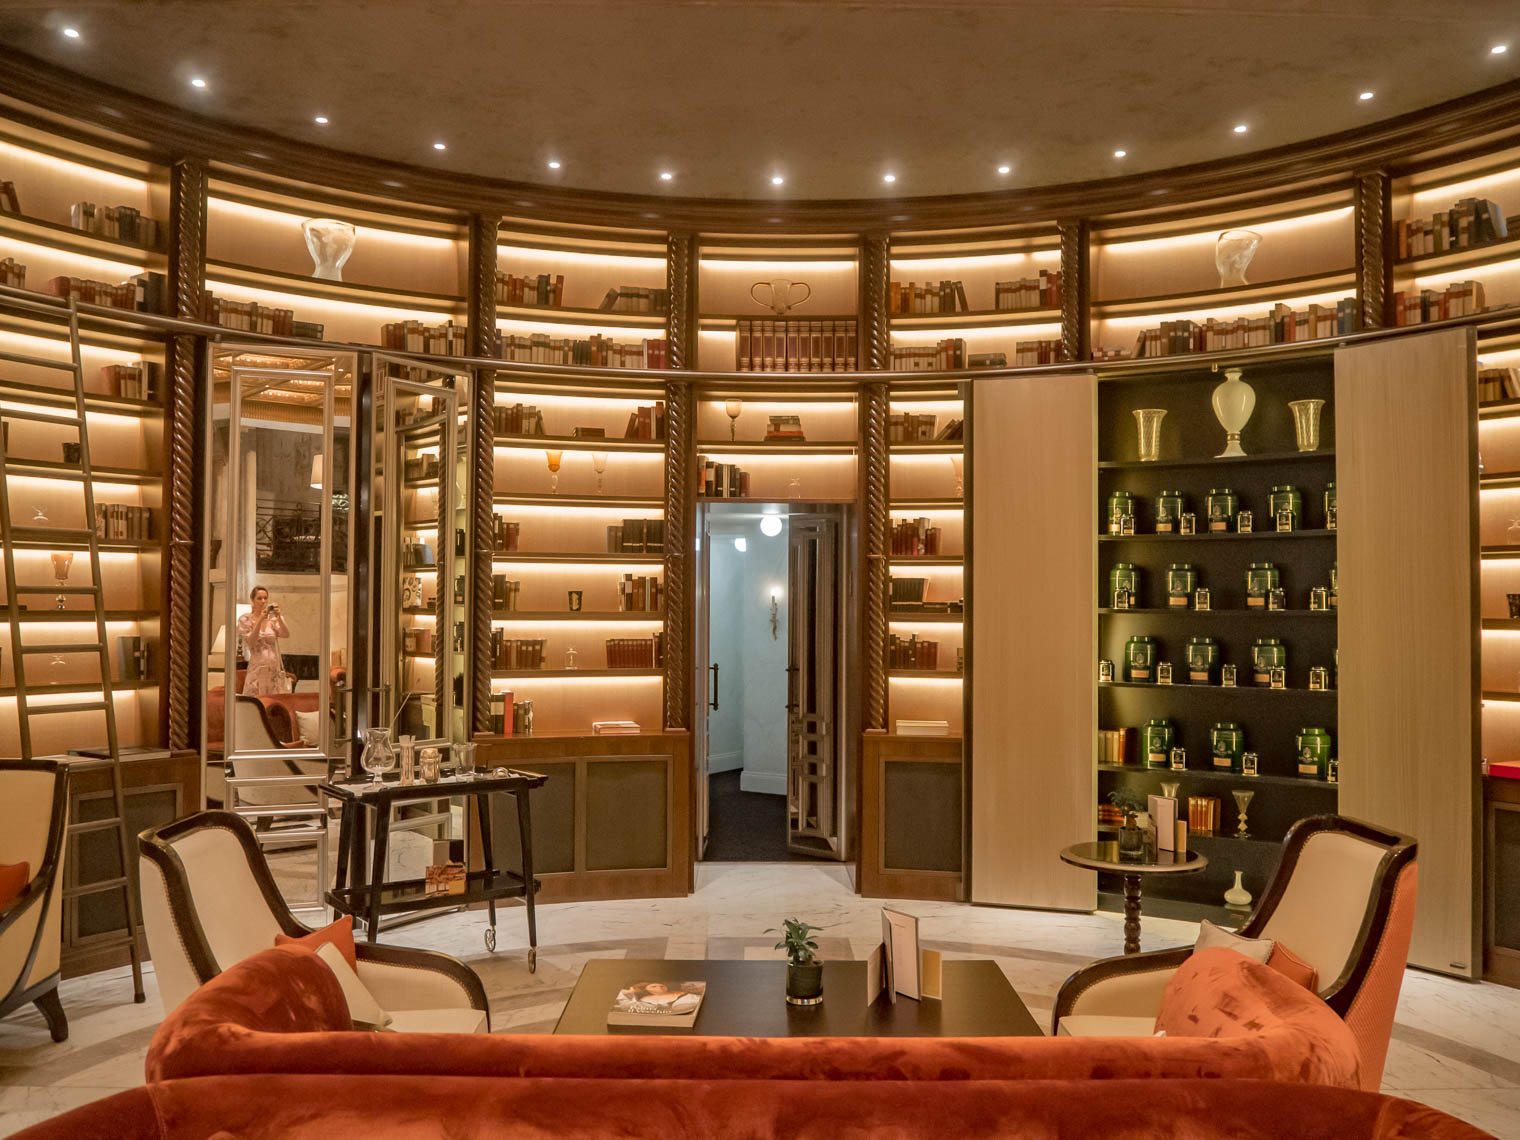 Library interior at the hotel Eden Rome